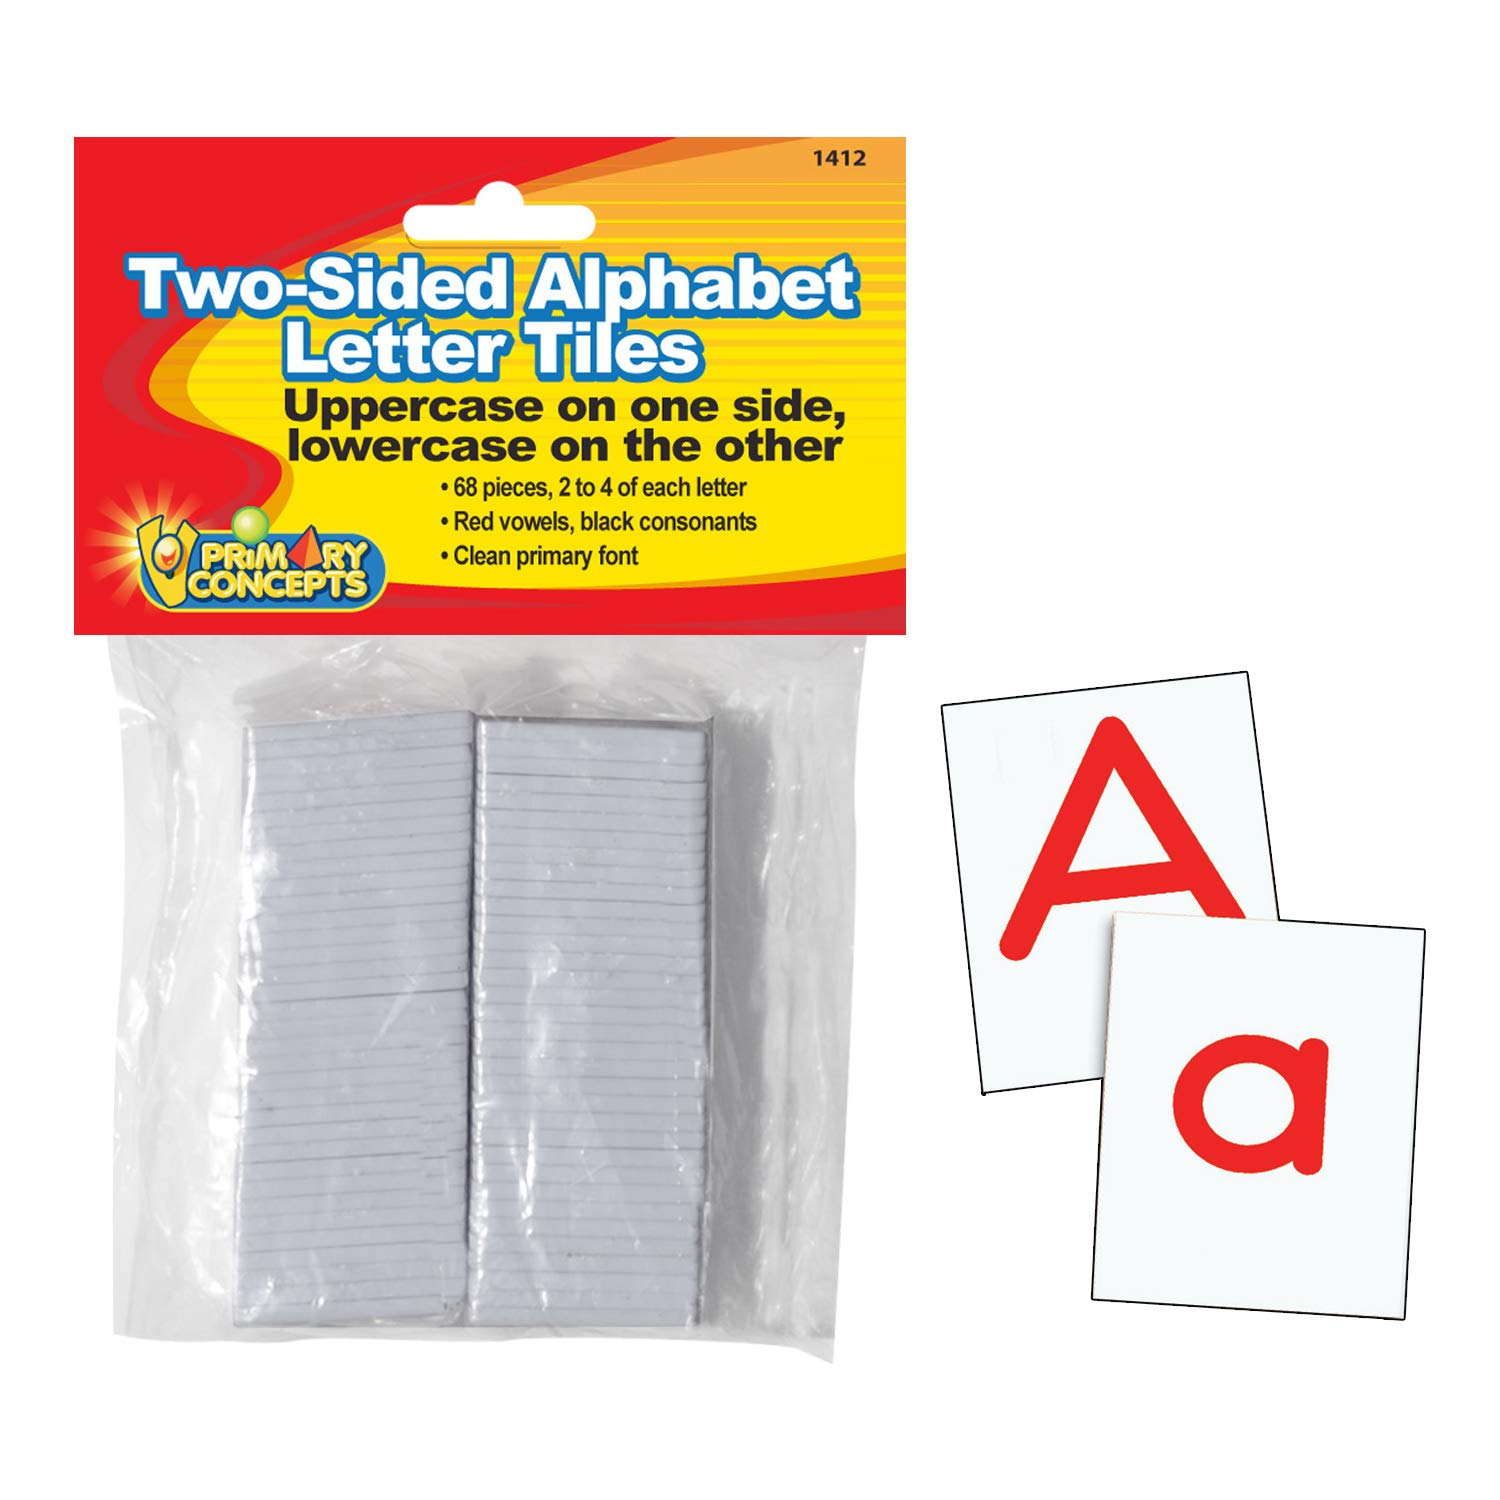 Primary Concepts, Inc PC-1412 Two-Sided Alphabet Letter Tiles Learning kit